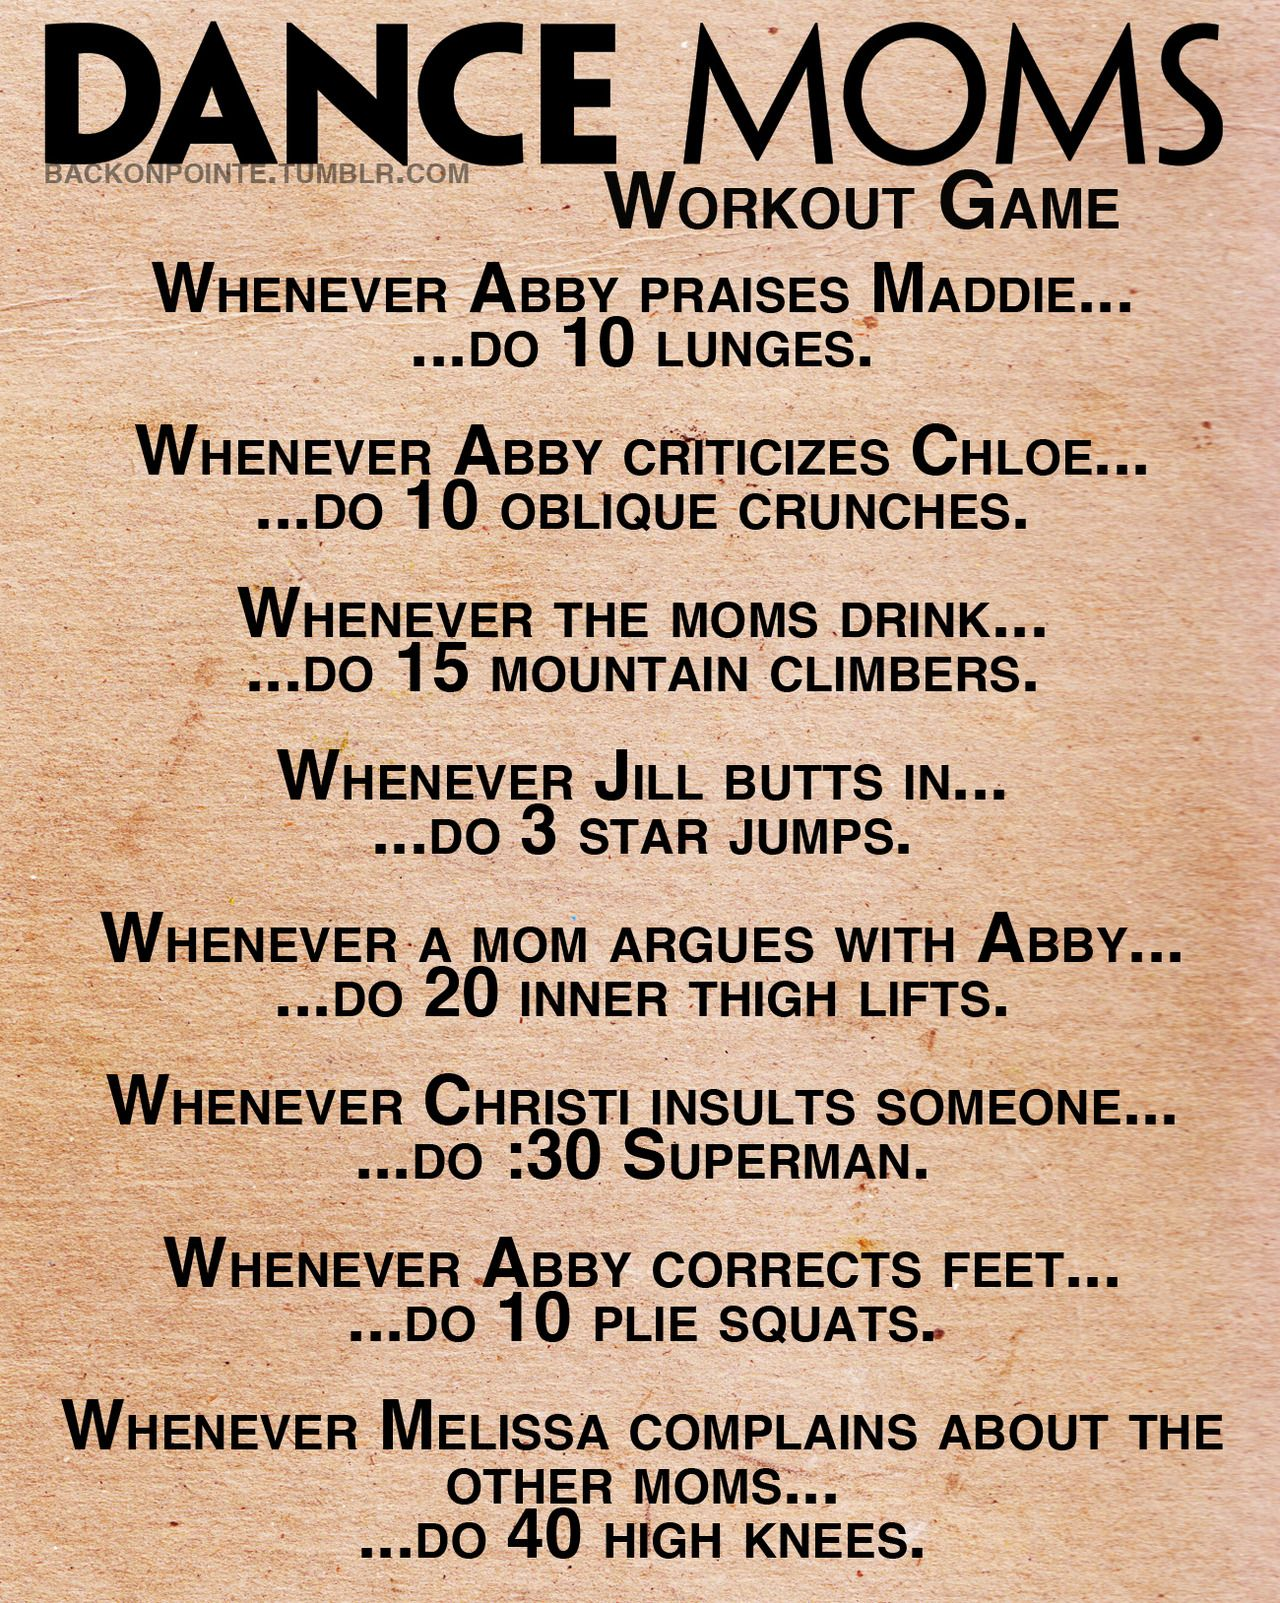 Dance Moms workout! Haha! I want to try! It's back on the air Jan 1st. I suppose I could re-watch seasons 1&2 and get into shape!!!